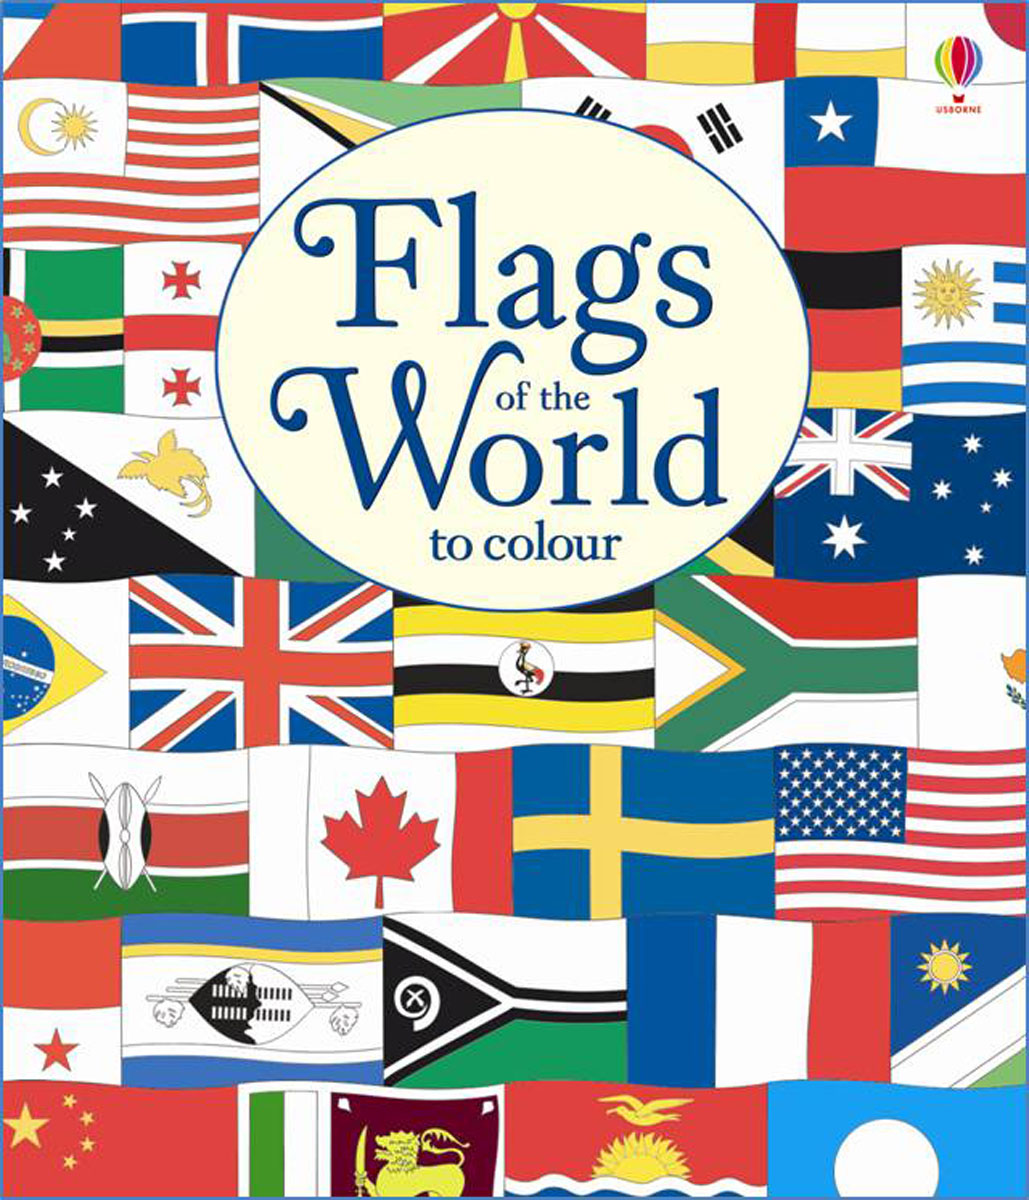 Flags of the World to Colour british museum around the world colouring book